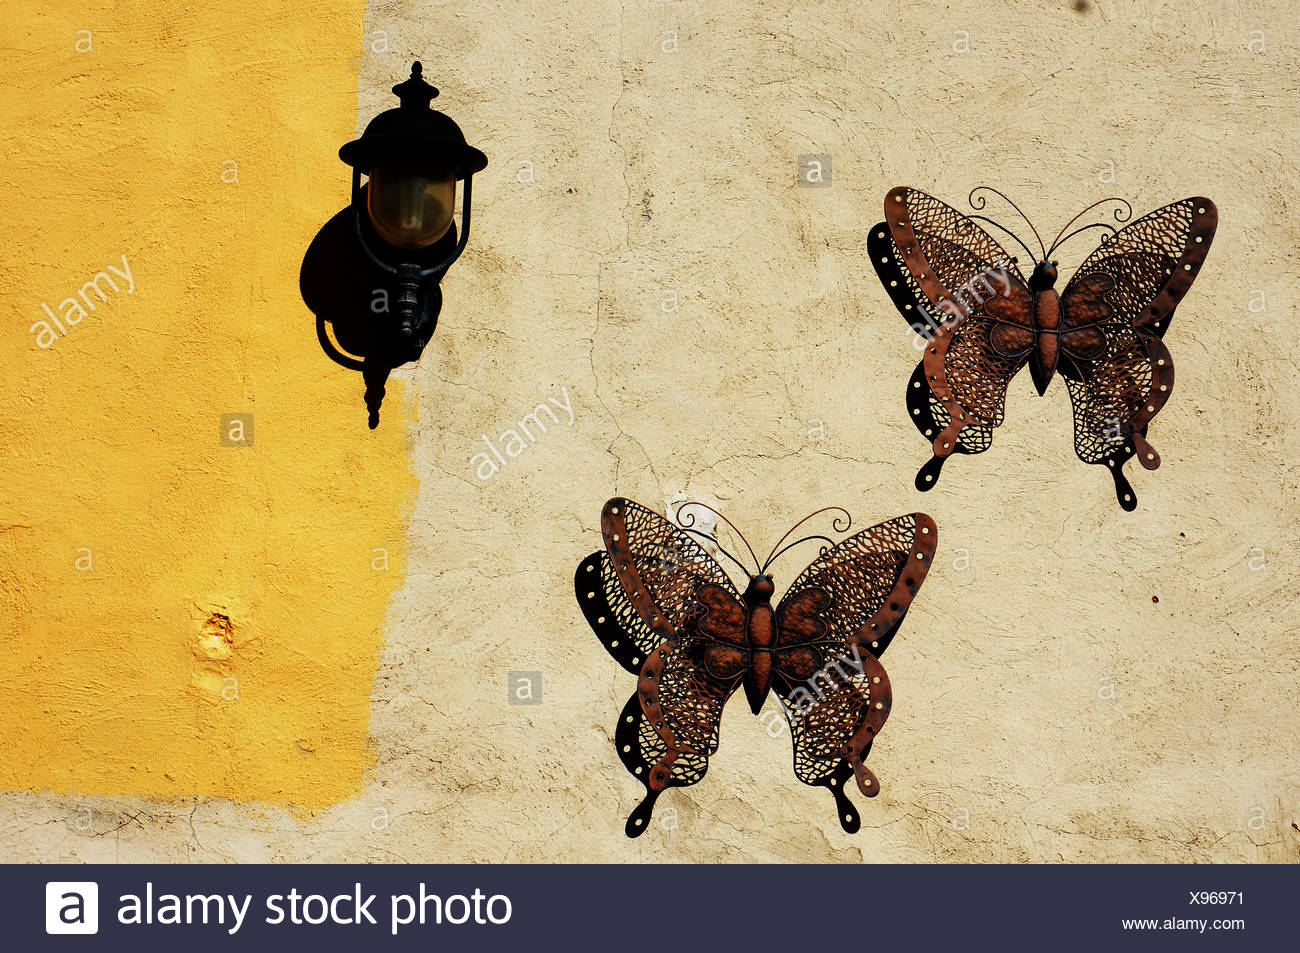 Butterfly wall decorations Stock Photo: 281036757 - Alamy